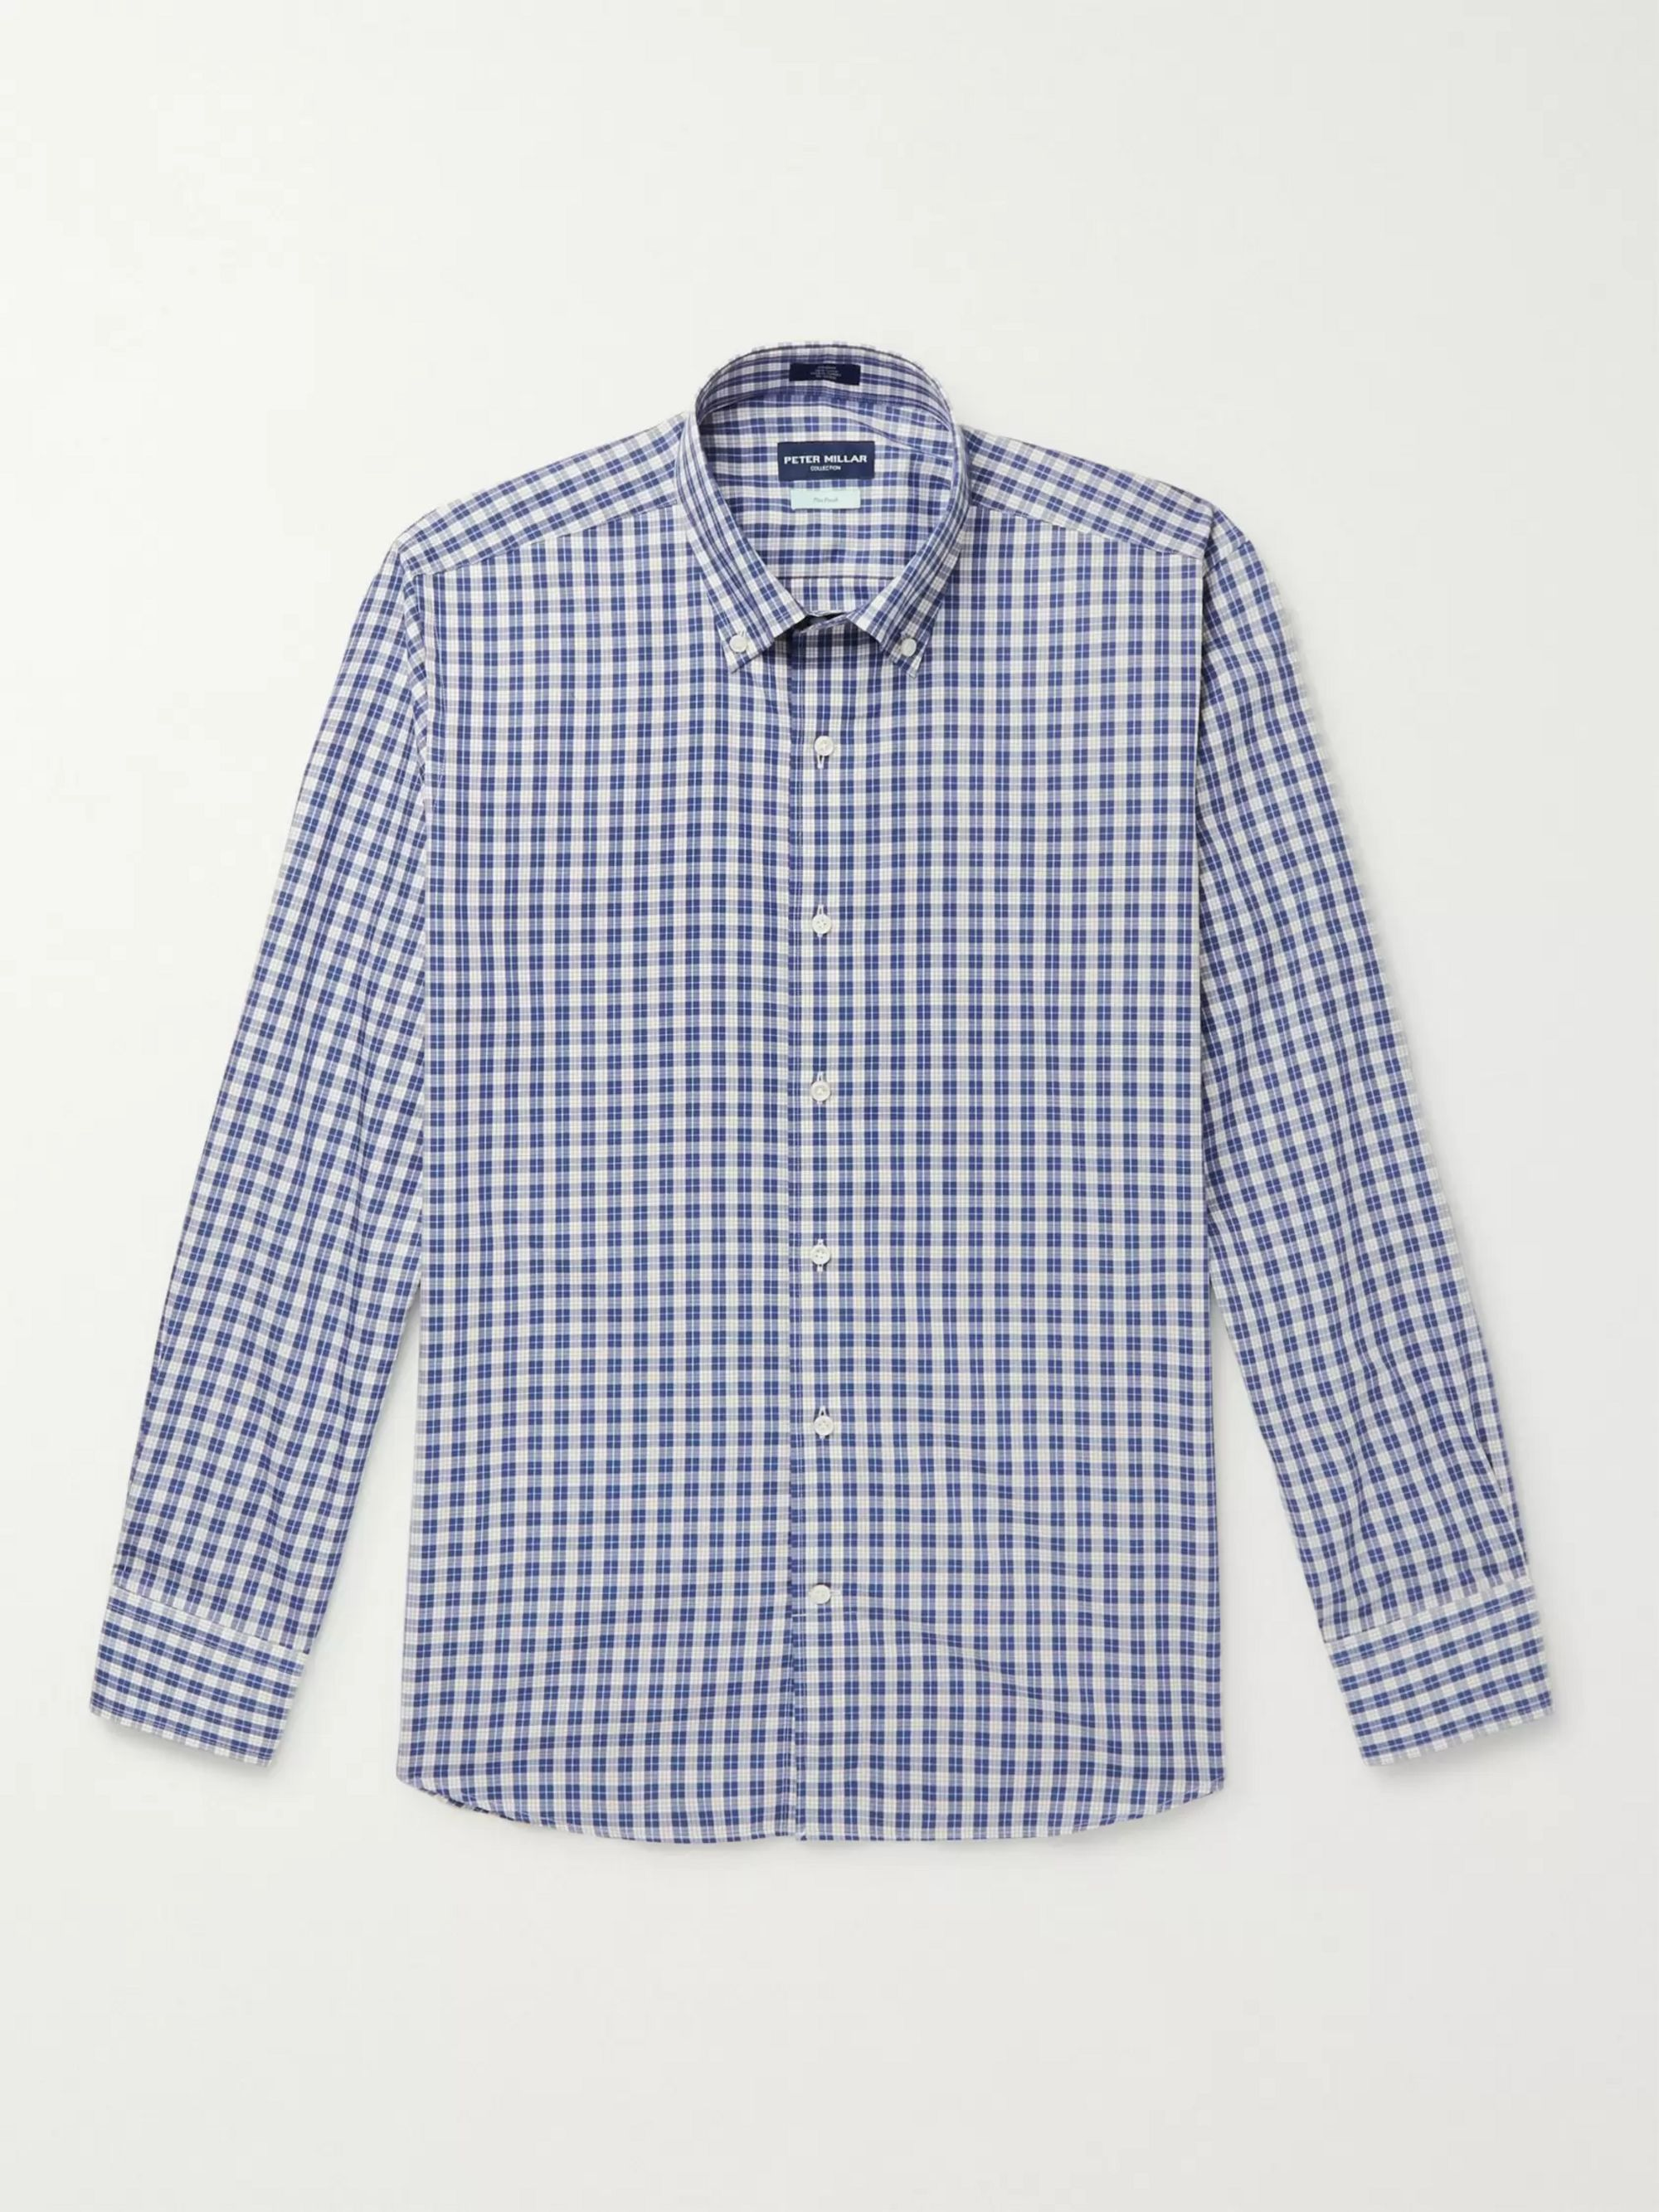 Peter Millar Tides Slim-Fit Button-Down Collar Checked Cotton Shirt